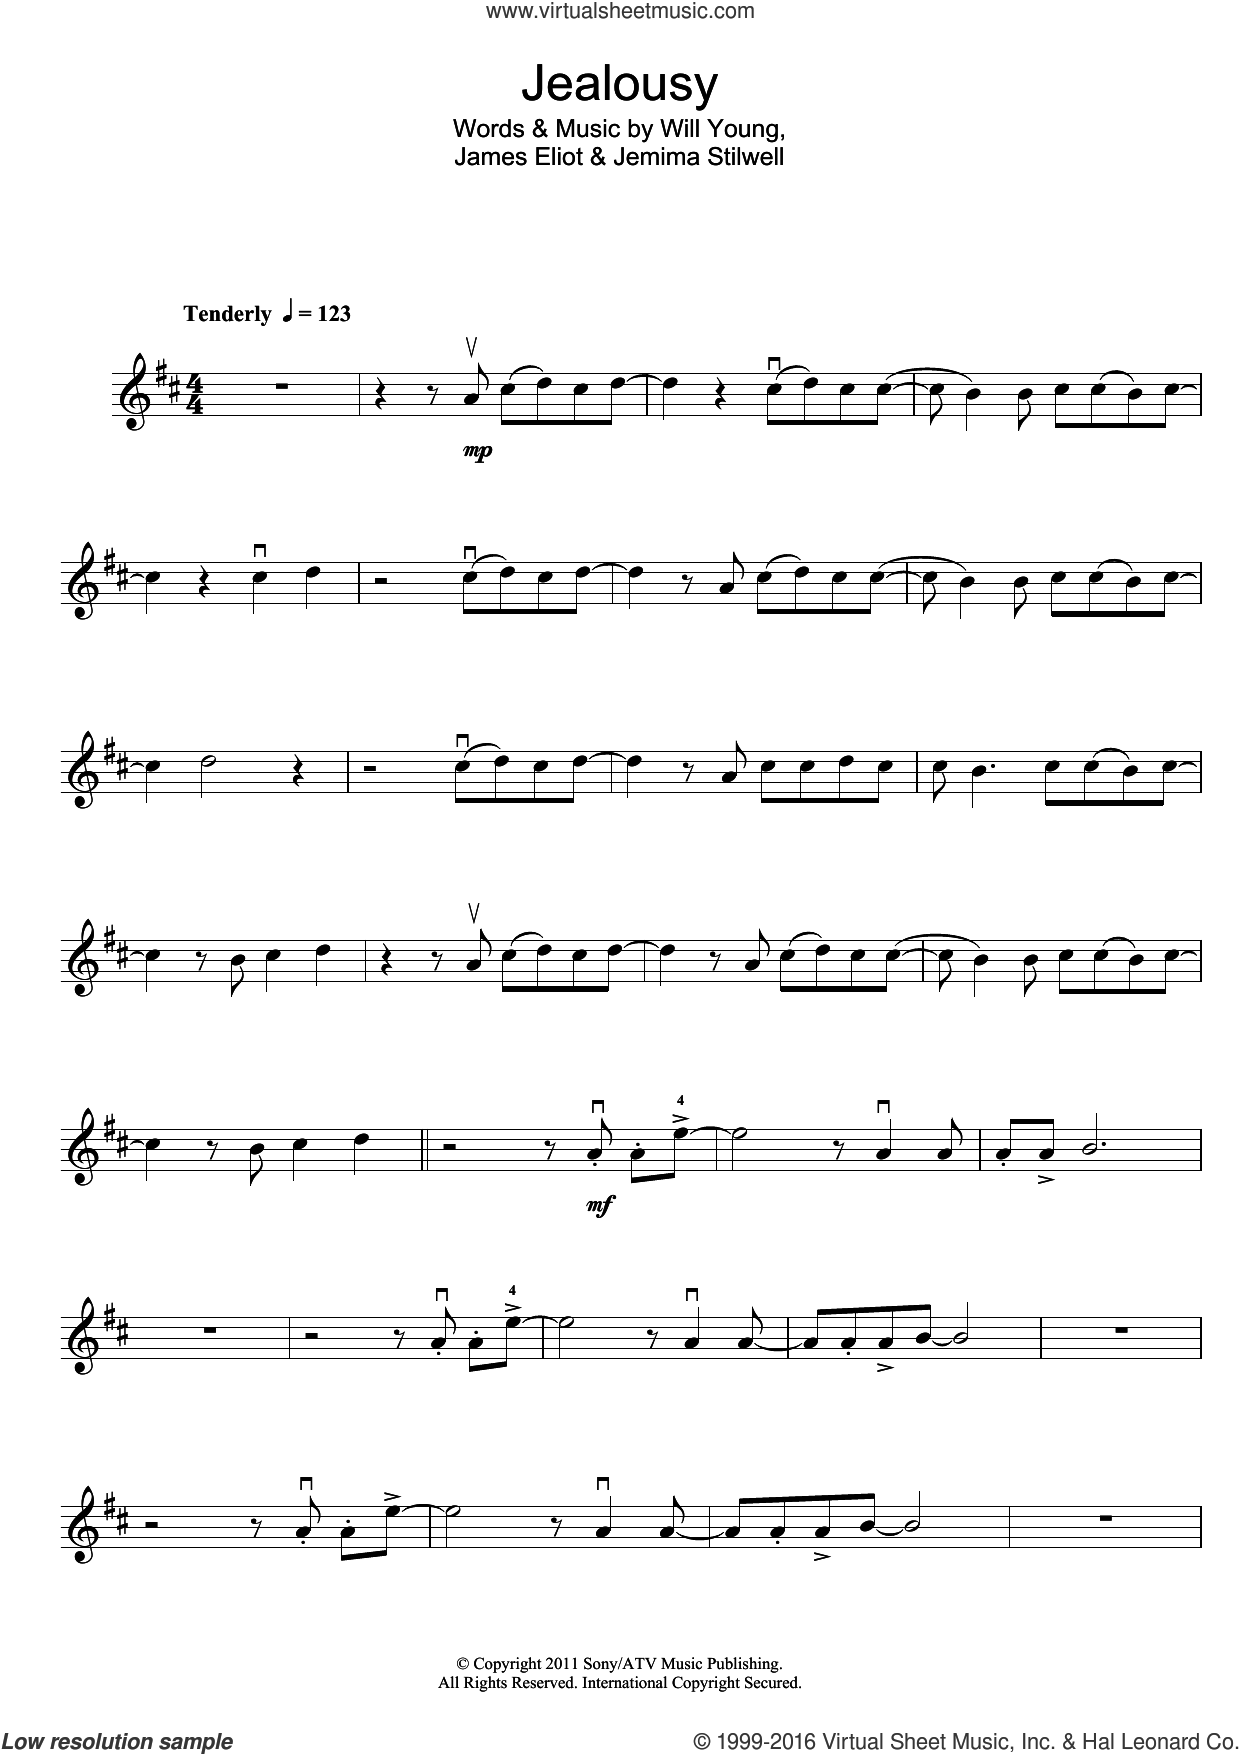 Jealousy sheet music for violin solo by Jim Eliot, Jemima Stilwell and Will Young. Score Image Preview.